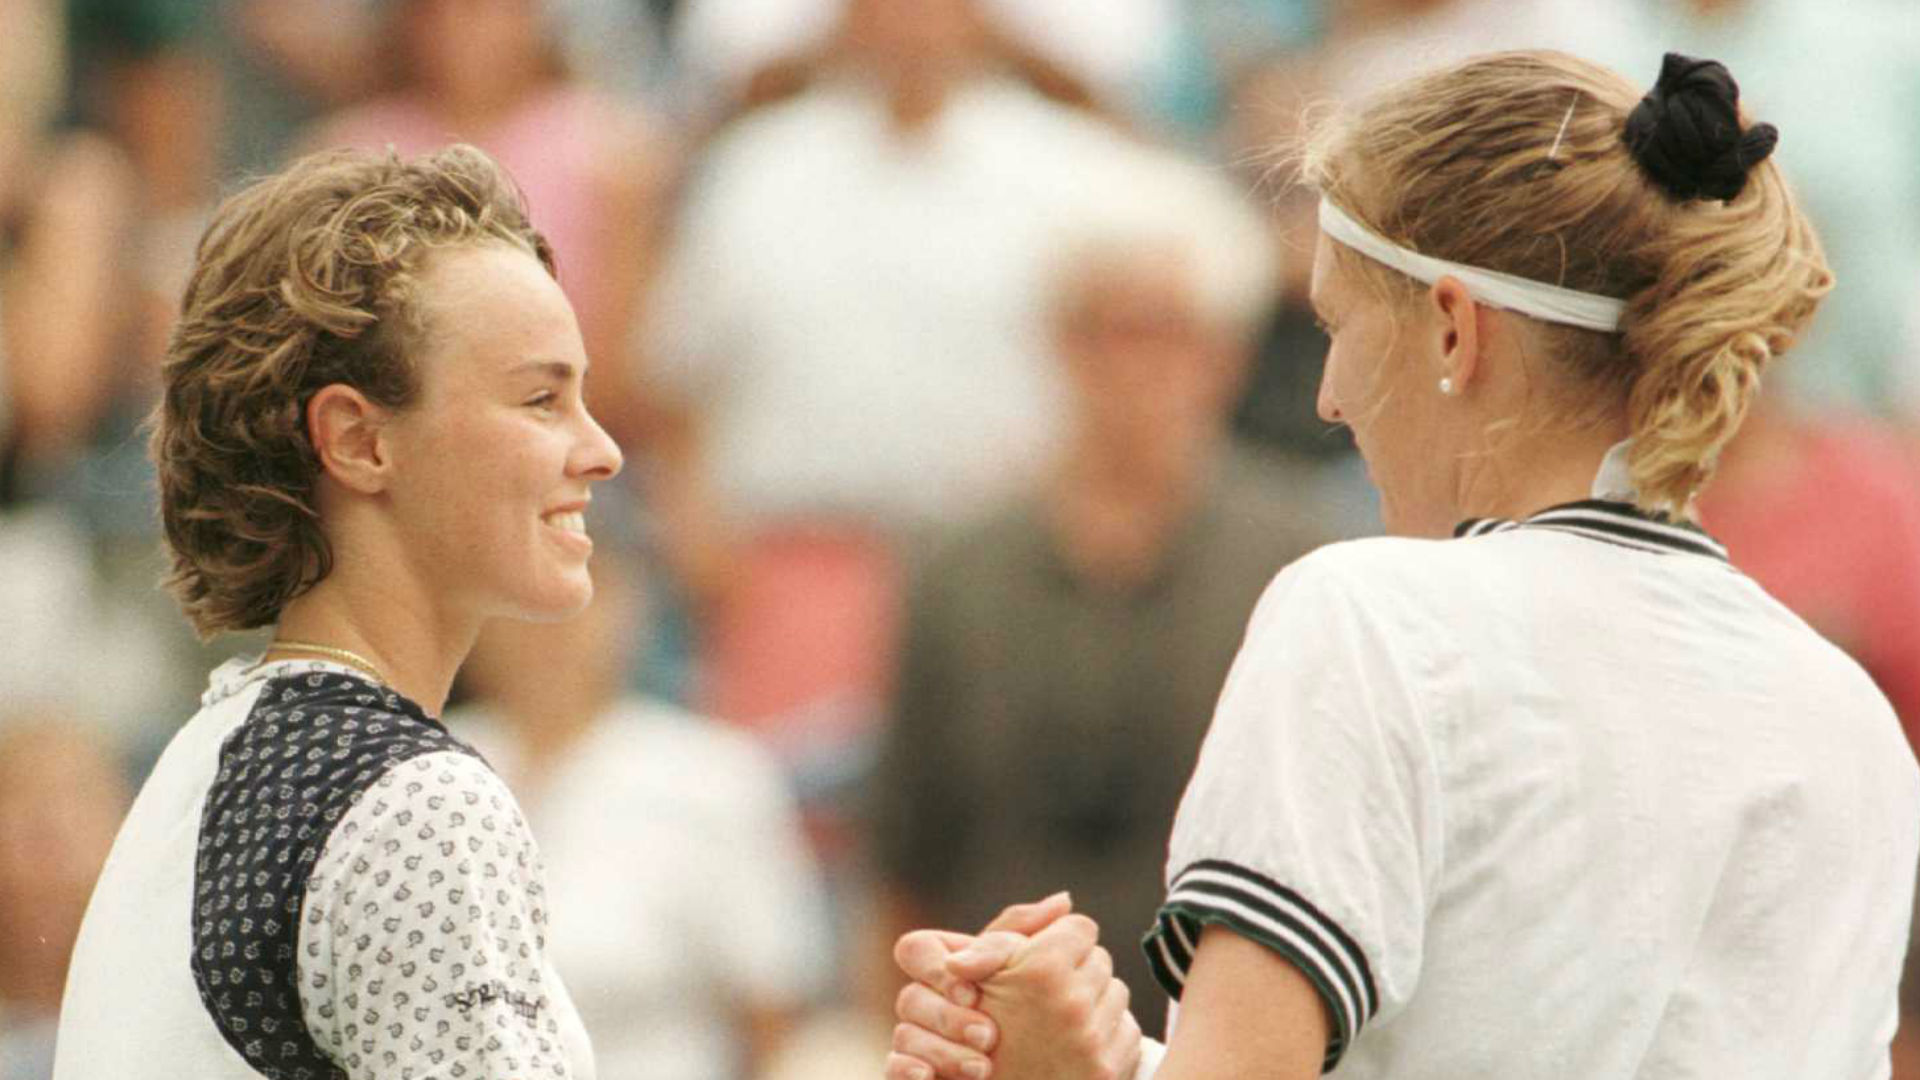 There have been many classic Wimbledon finals over the years, but some battles we hoped to see never came about.